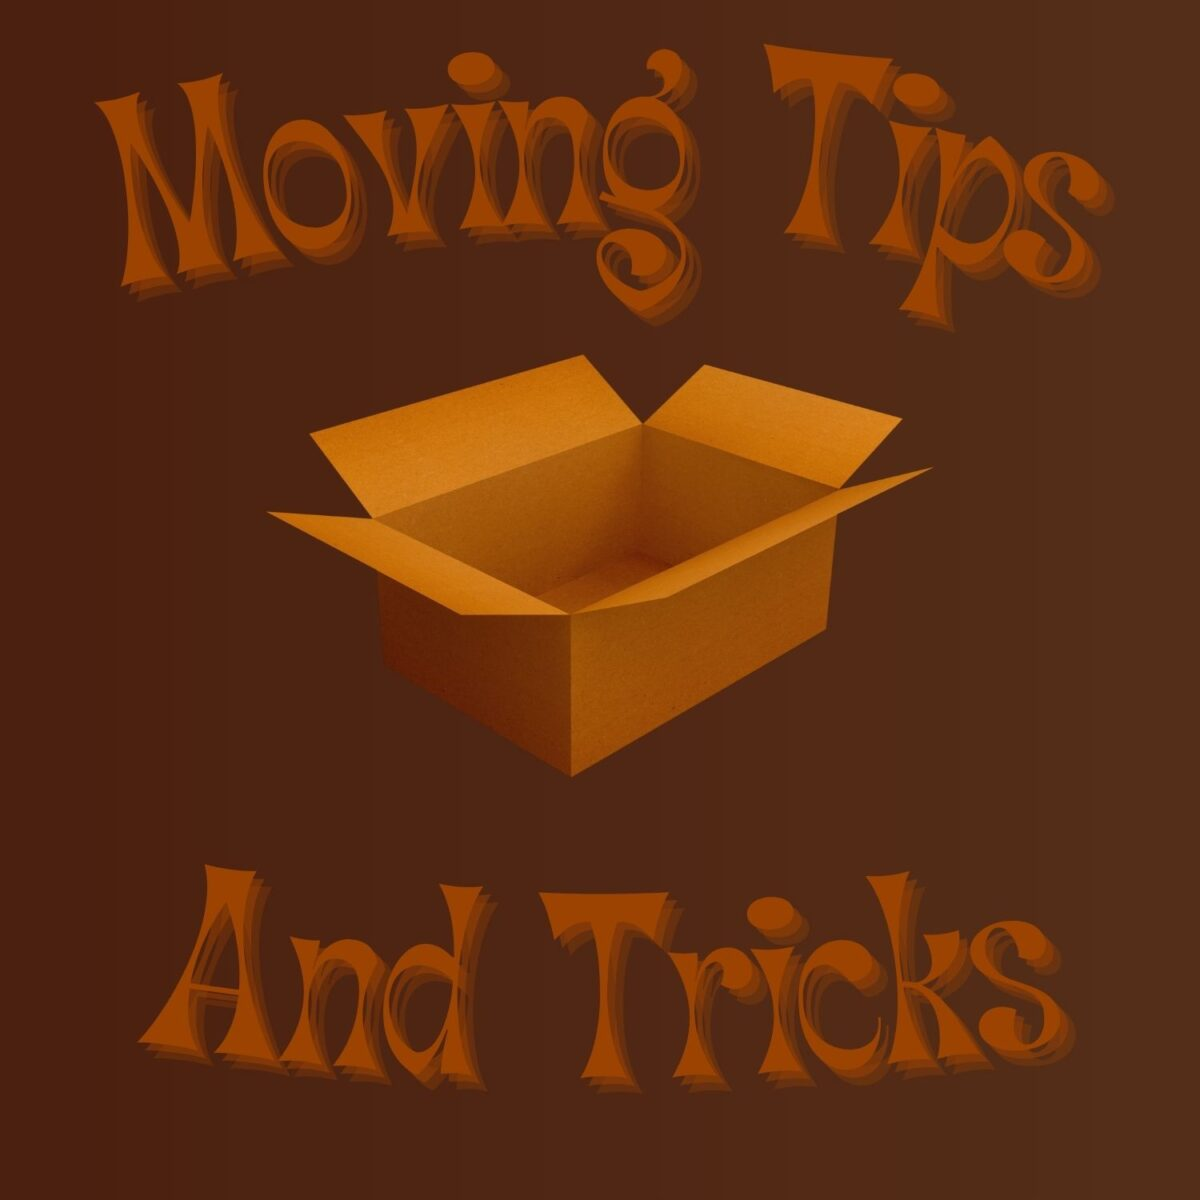 Moving Tips with cardboard box